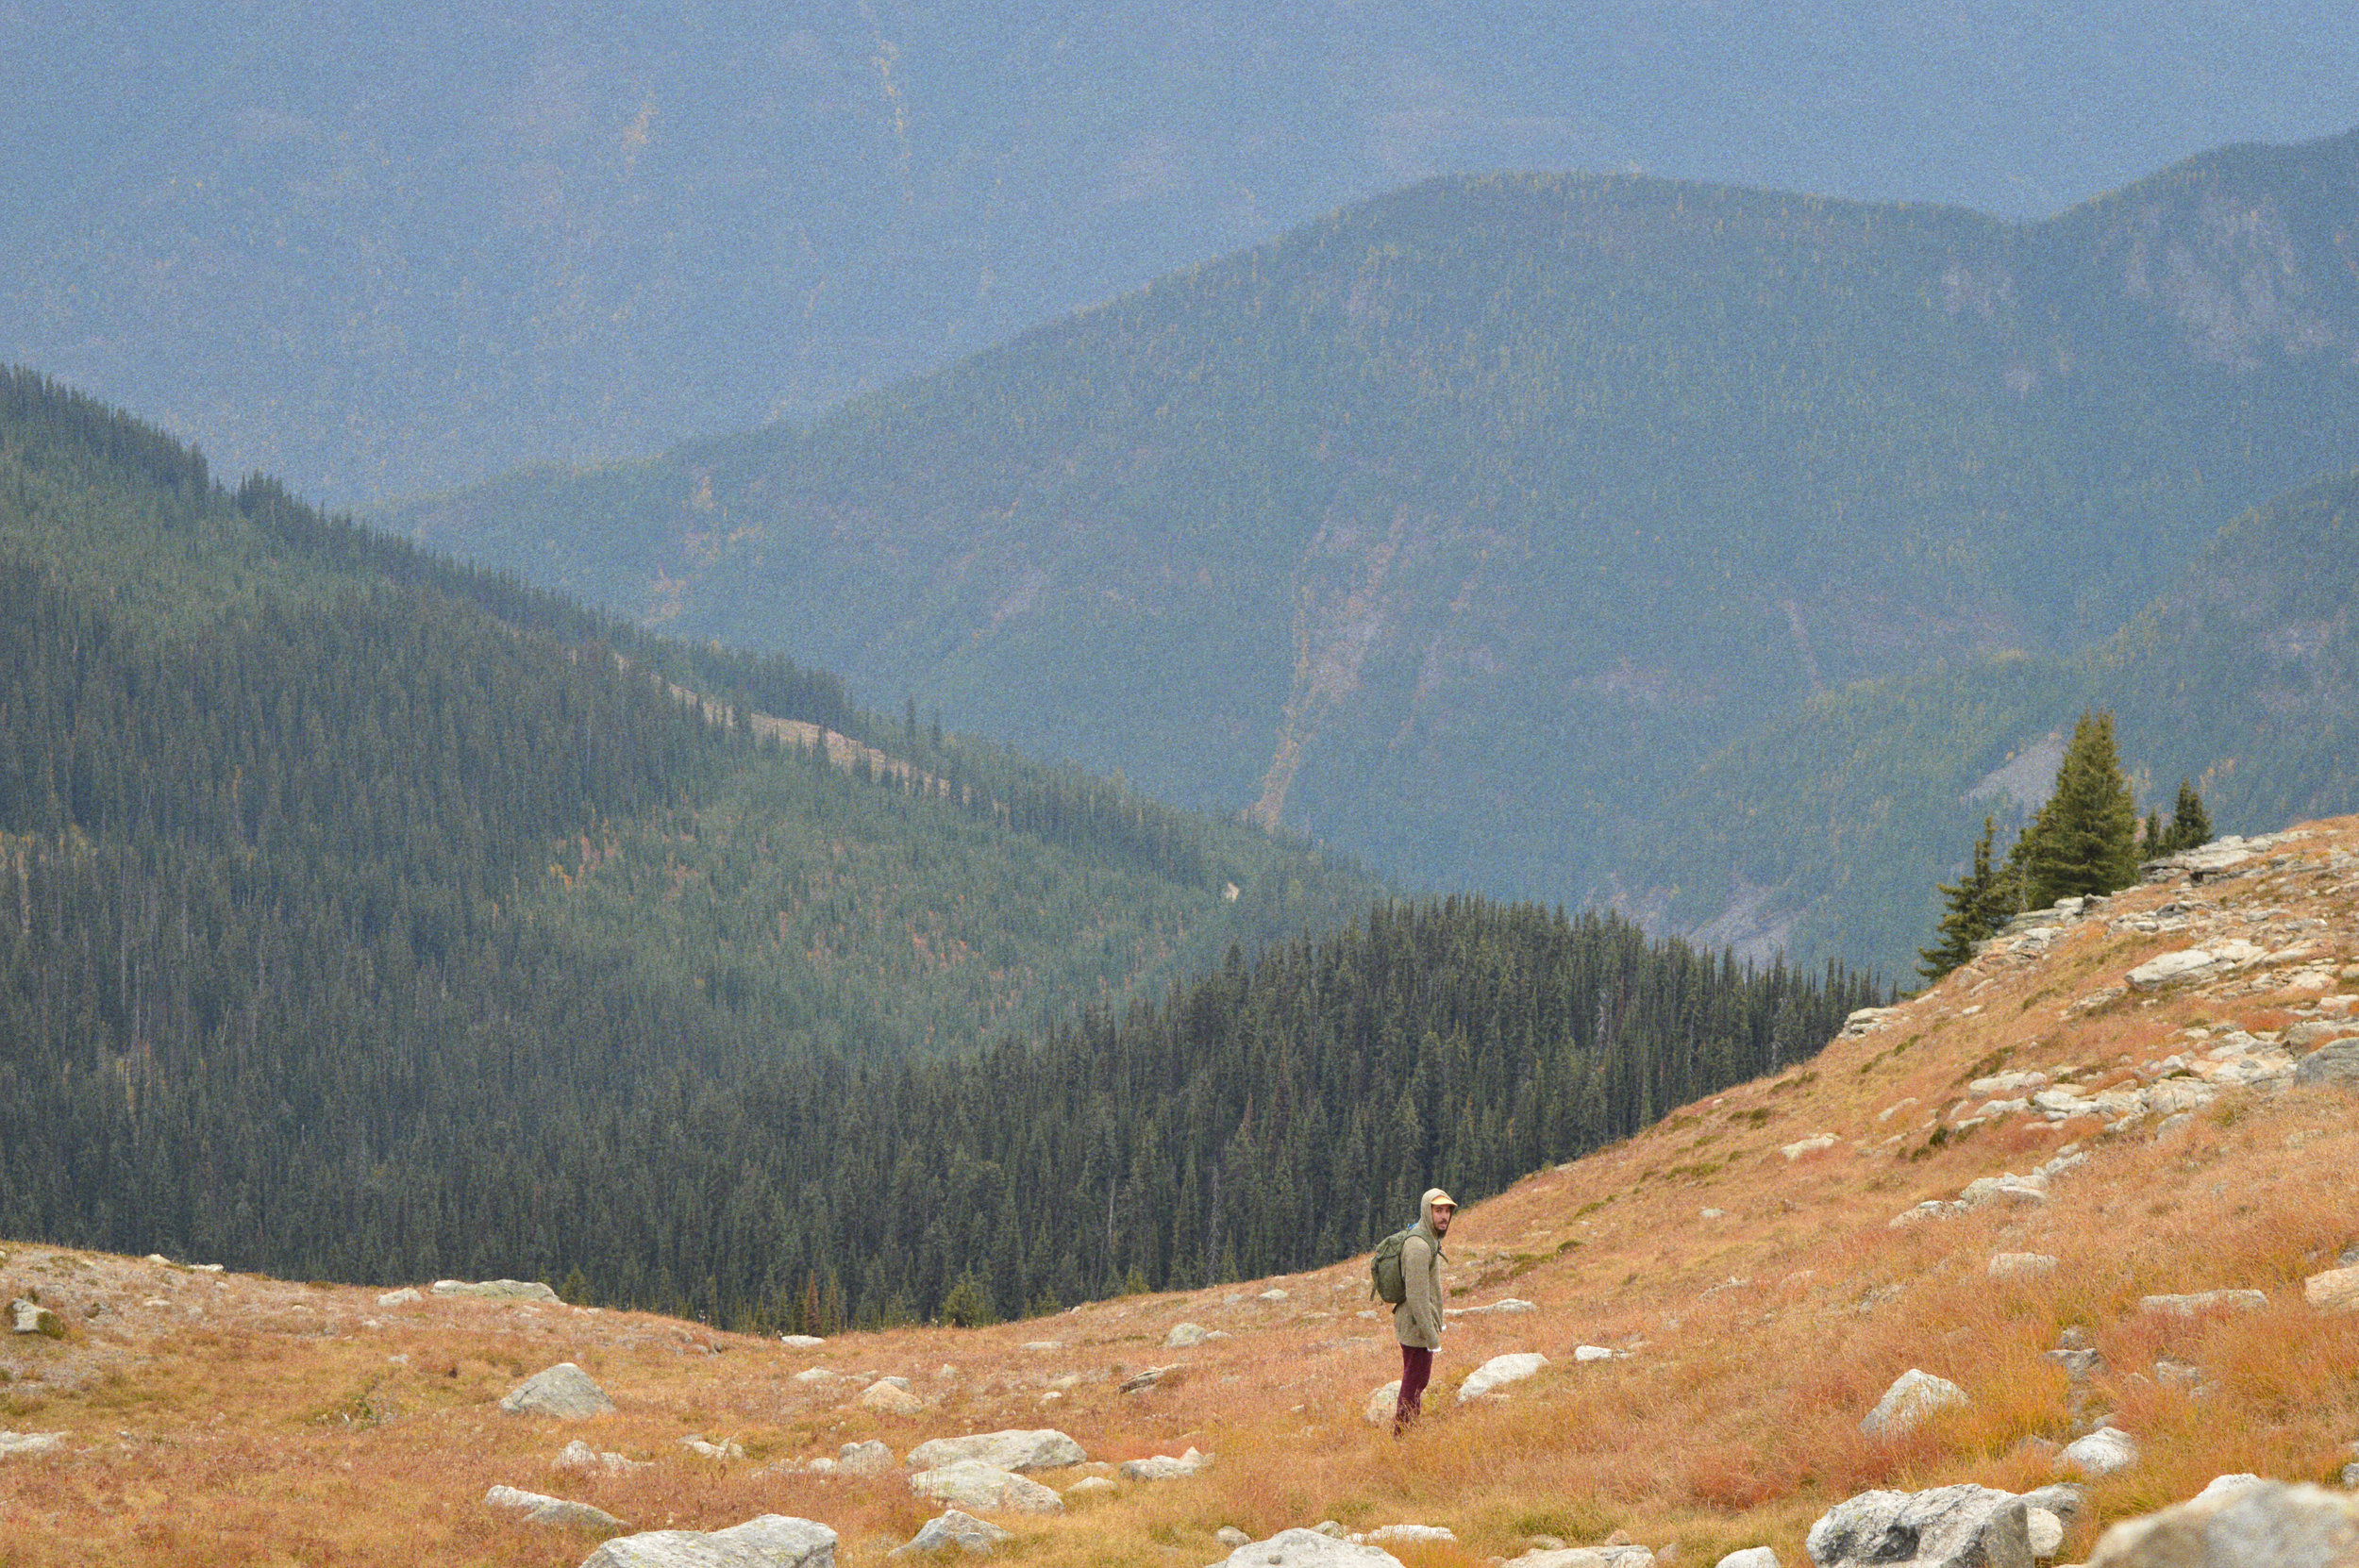 Hiking in Valhalla Provincial Park